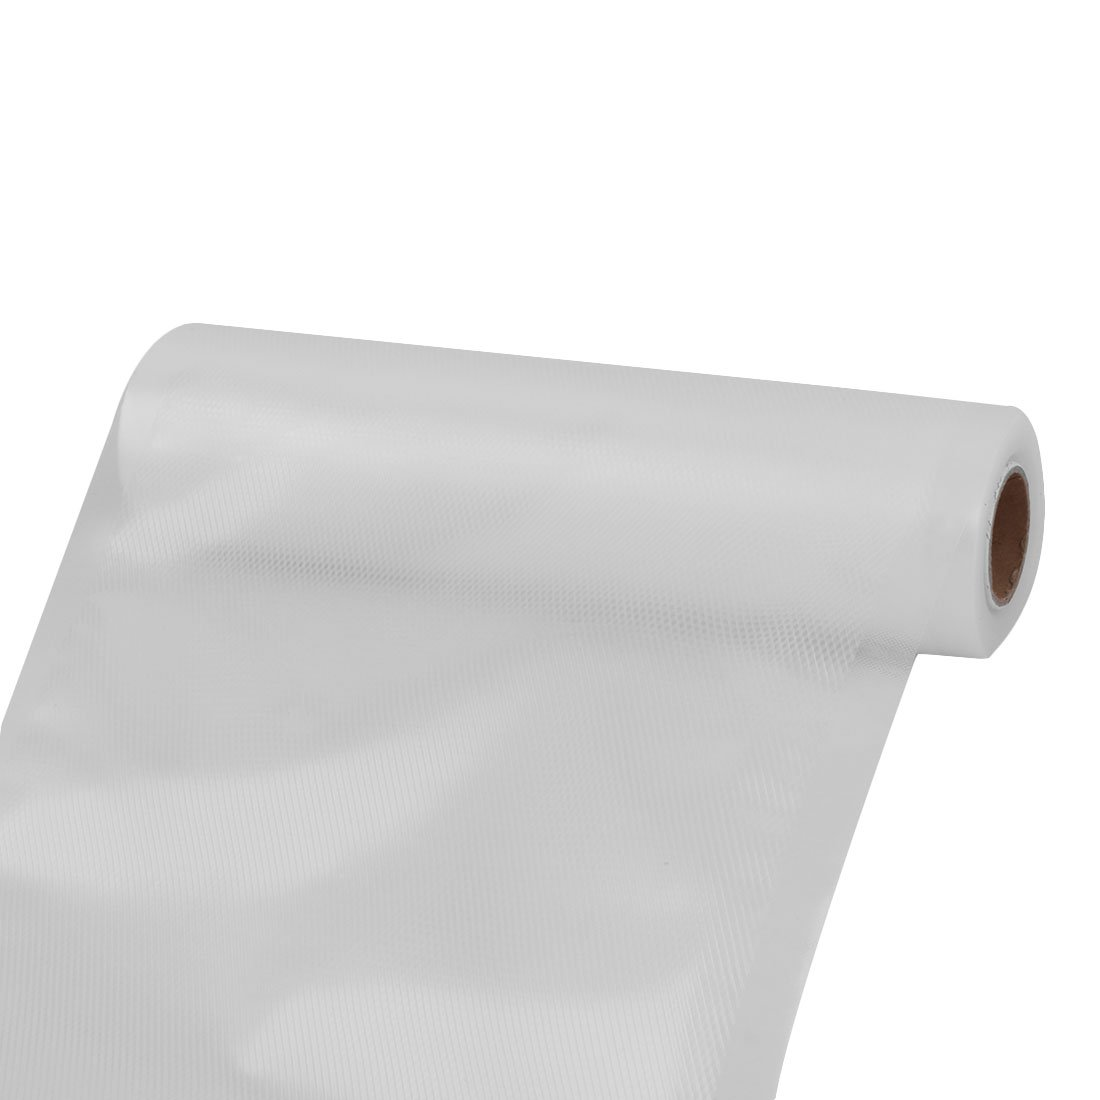 uxcell PVC Household Refrigerator Meat Fruit Food Storage Bag Vacuum Roll 5M Length White